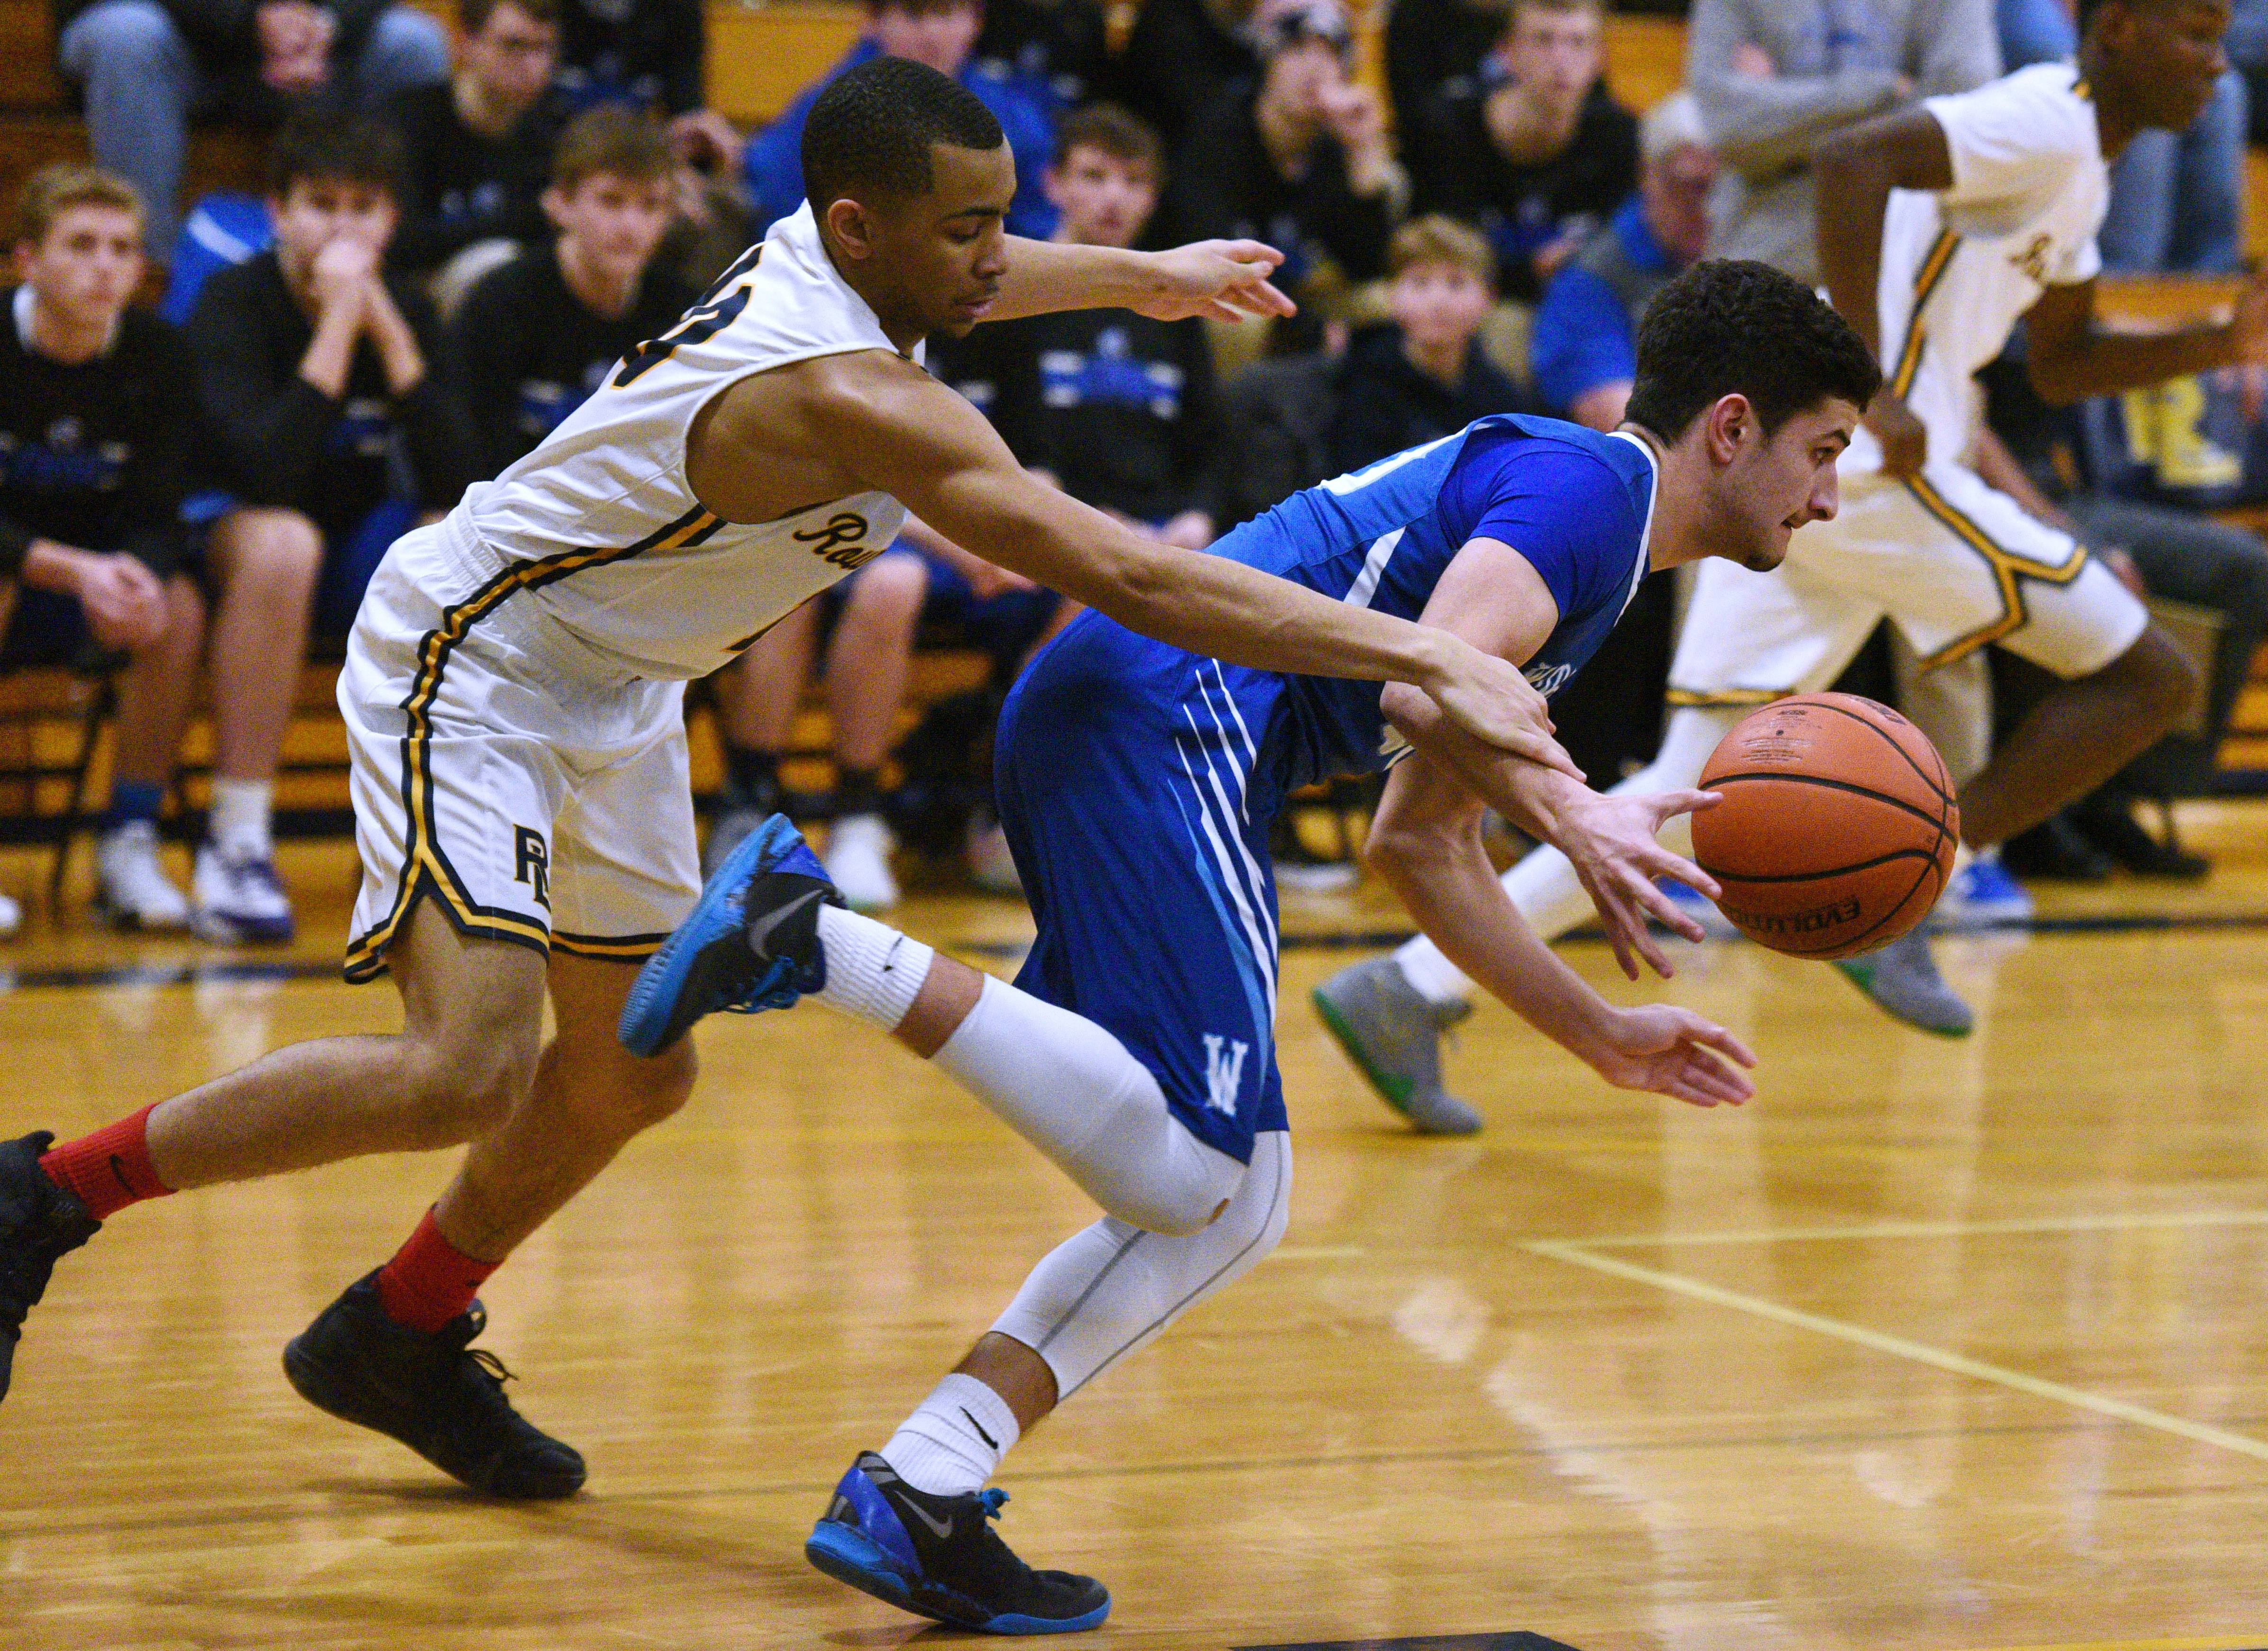 Round Lake's Isaiah Nixon, left, pressures Woodstock's David Shinherr during Thursday's boys basketball game in Round Lake.